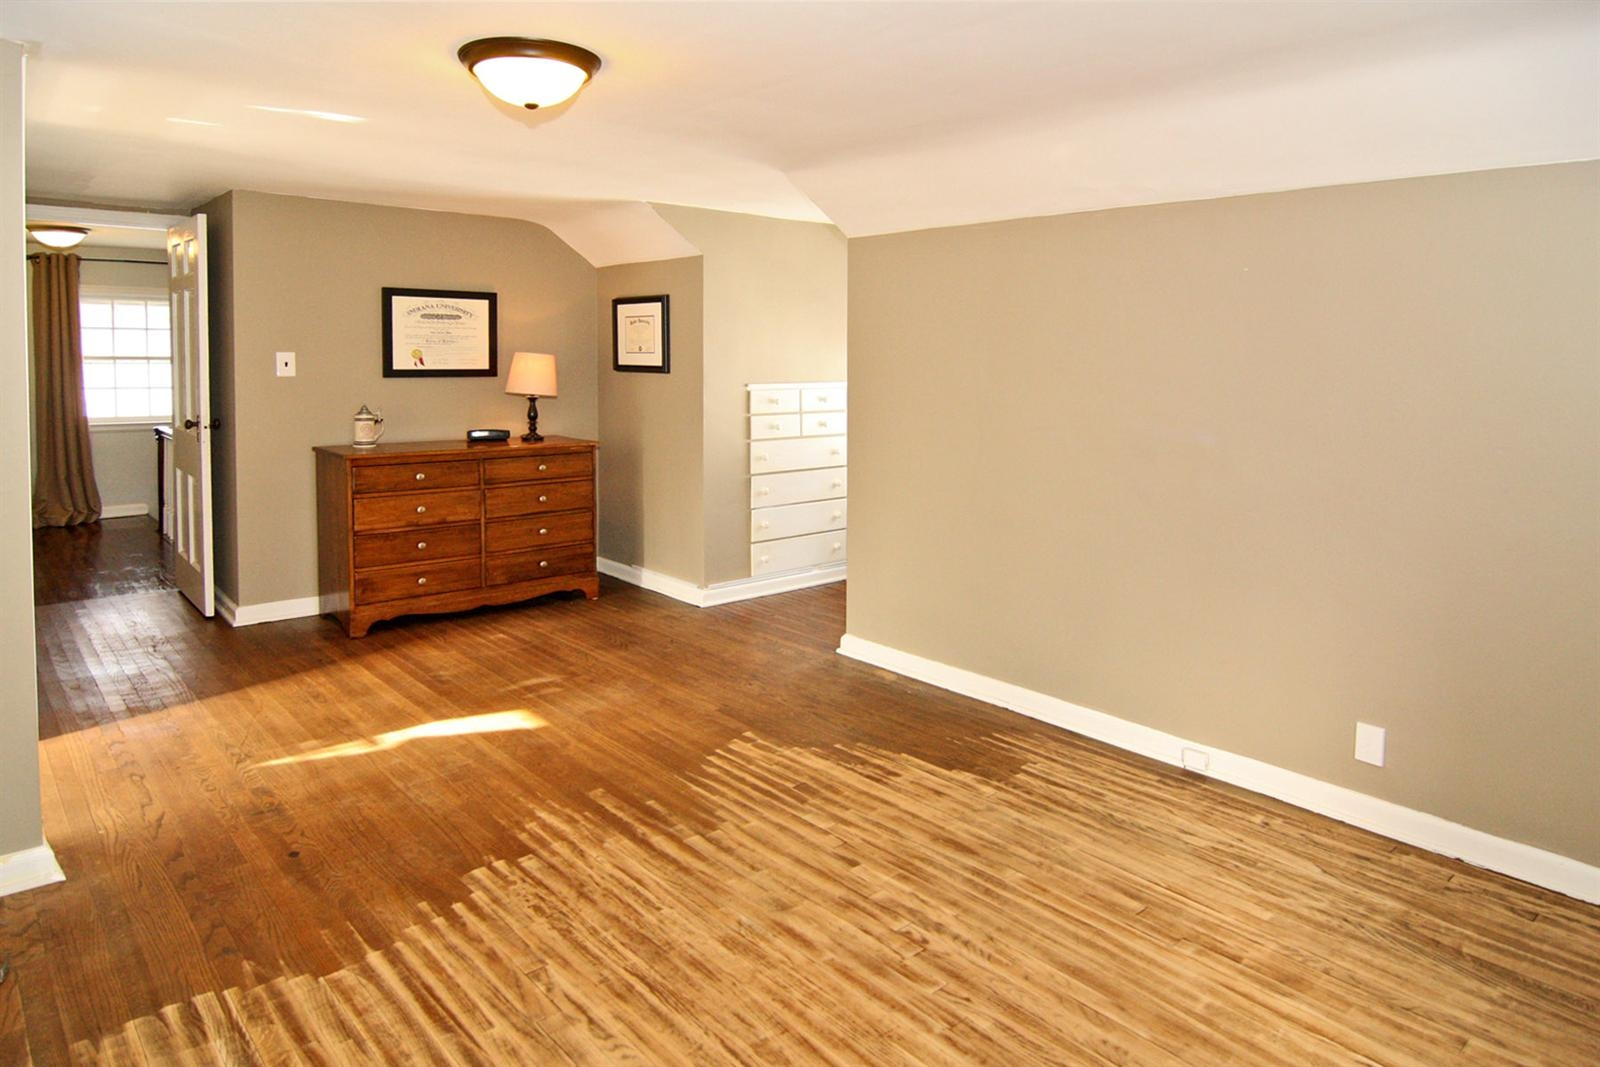 Real Estate Photography - 5022 Graceland Ave, Indianapolis, IN, 46208 - Location 11